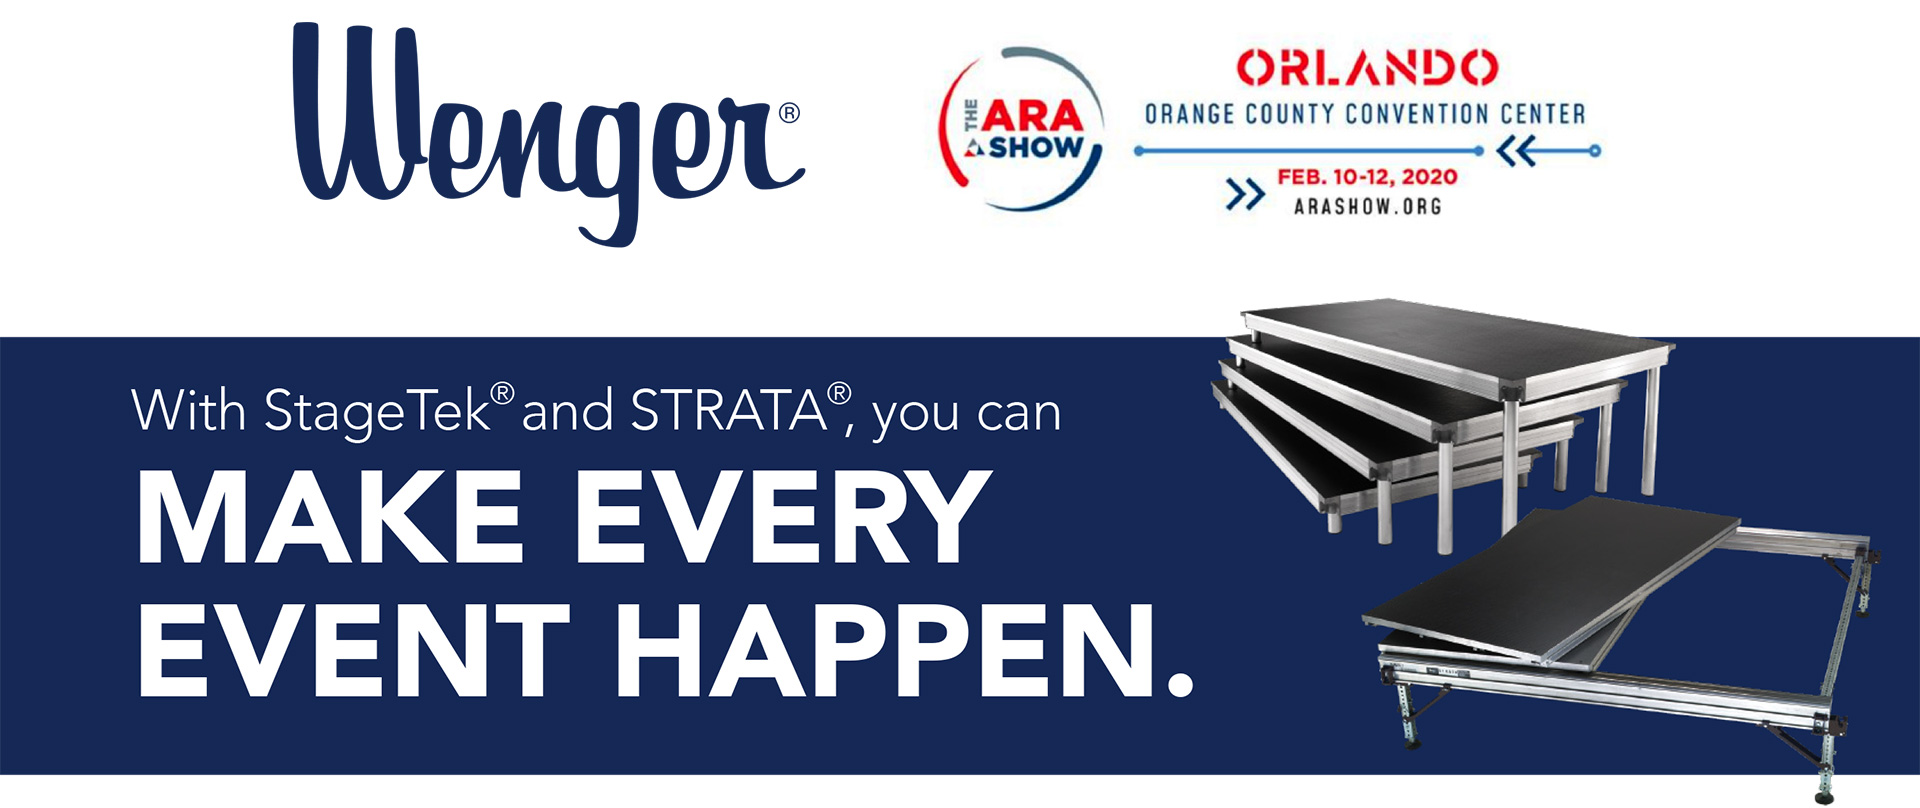 With StageTek®, you can MAKE EVERY EVENT HAPPEN.